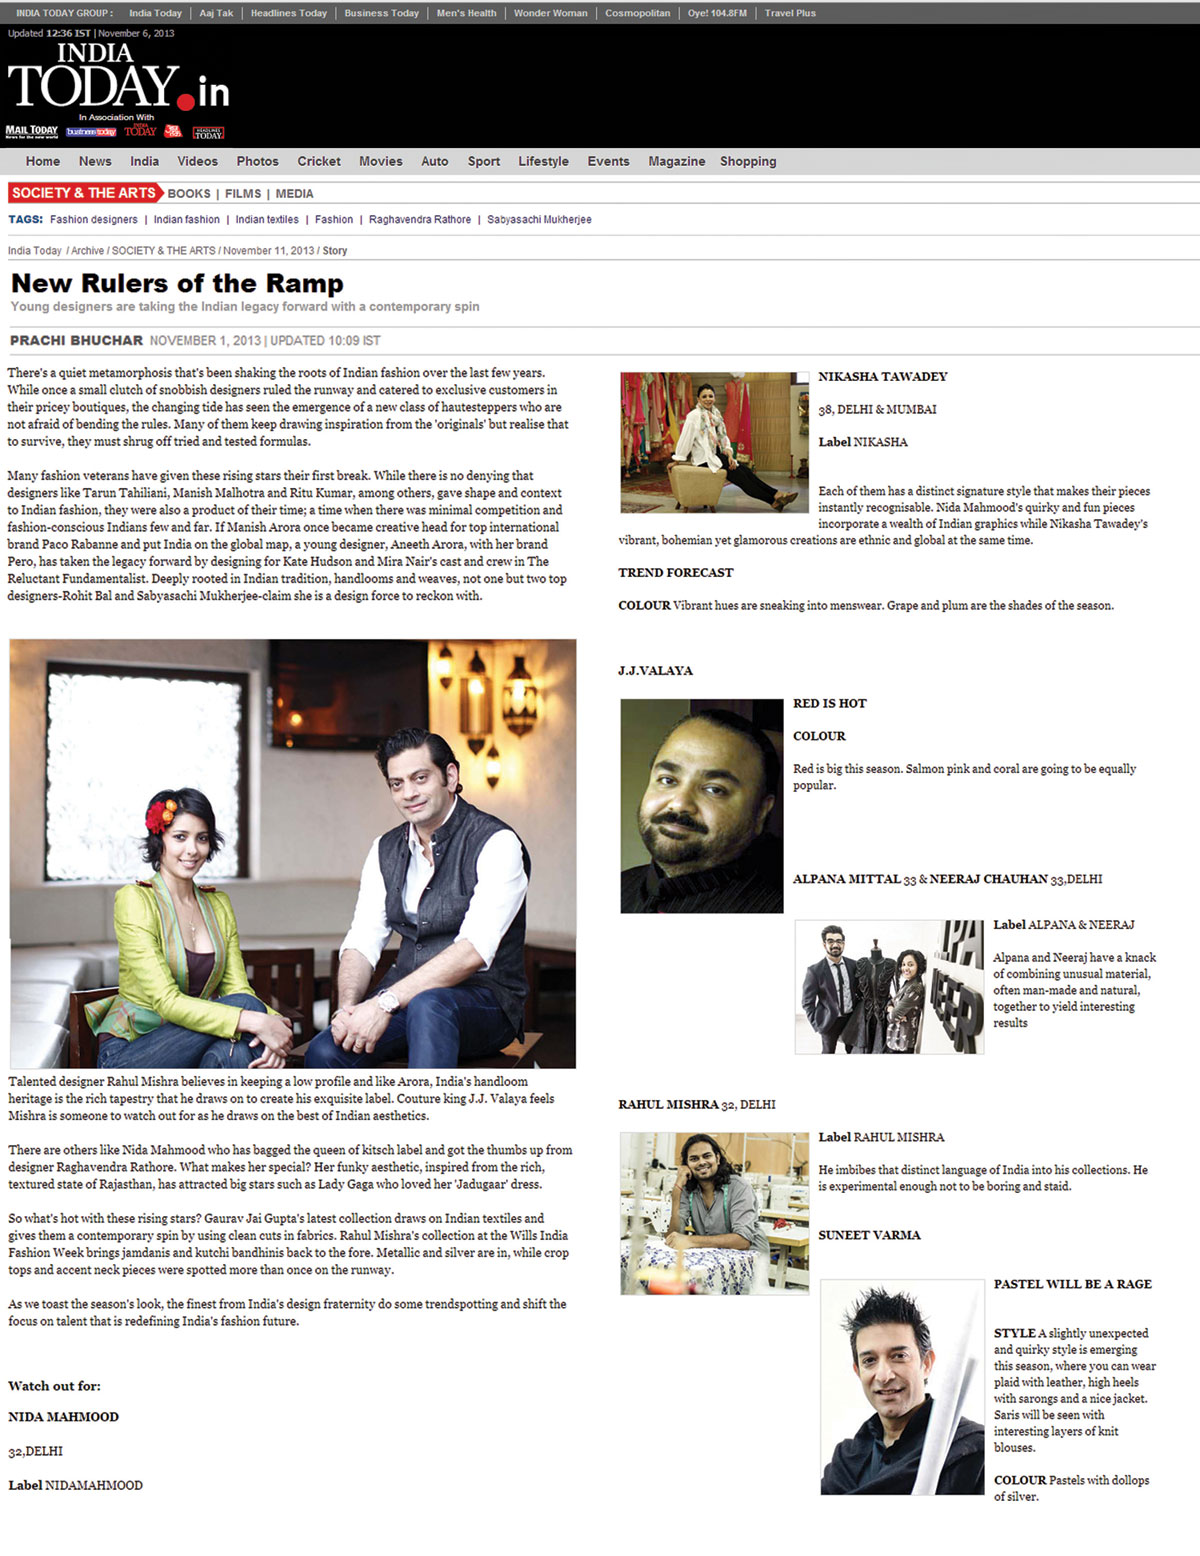 indian-fashion-designer-nida-mahmood-featured-in-India-today-news-for-bombay-bioscope